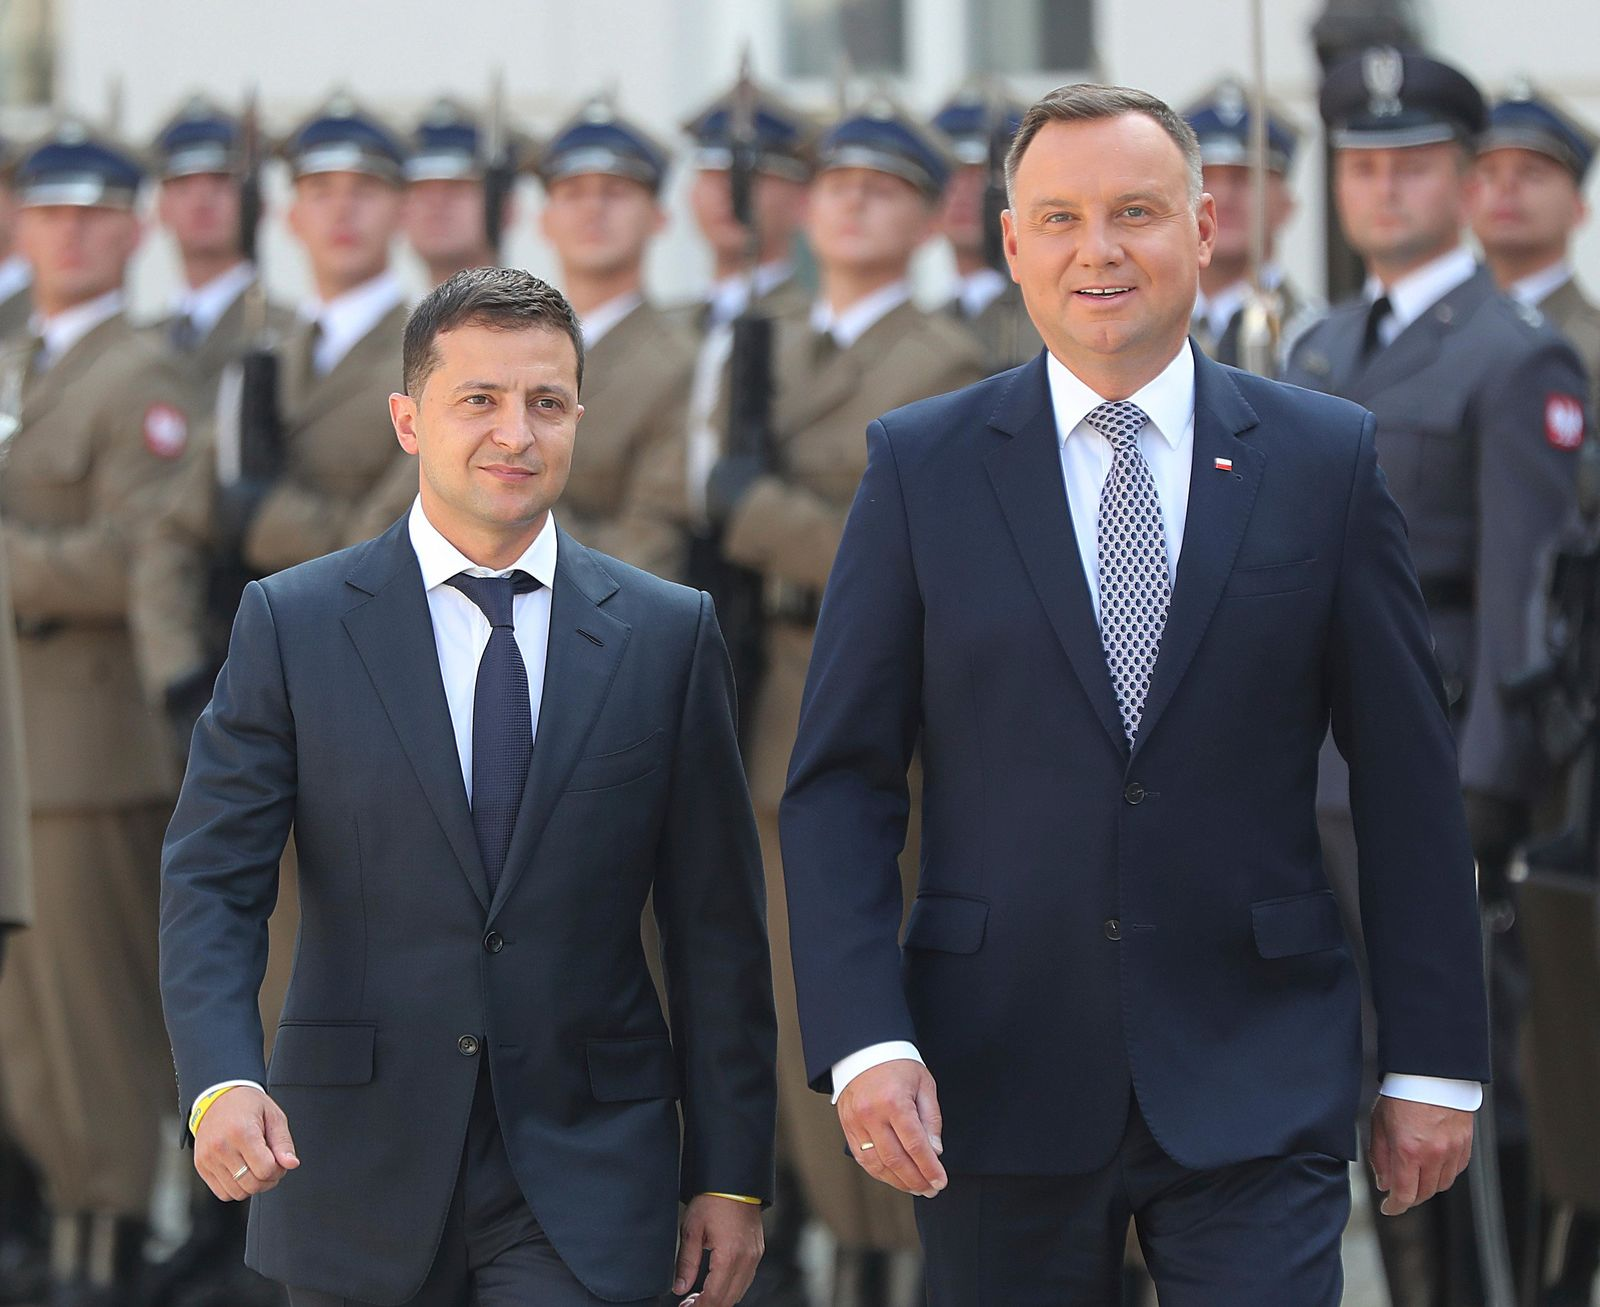 Poland's President Andrzej Duda,right, welcomes Ukraine's President Volodymyr Zelenskiy before talks on bilateral relations and Ukraine's ties with Europe under the new government, in front of the Presidential Place in Warsaw, Poland, Saturday, Aug. 31, 2019. (AP Photo/Czarek Sokolowski)